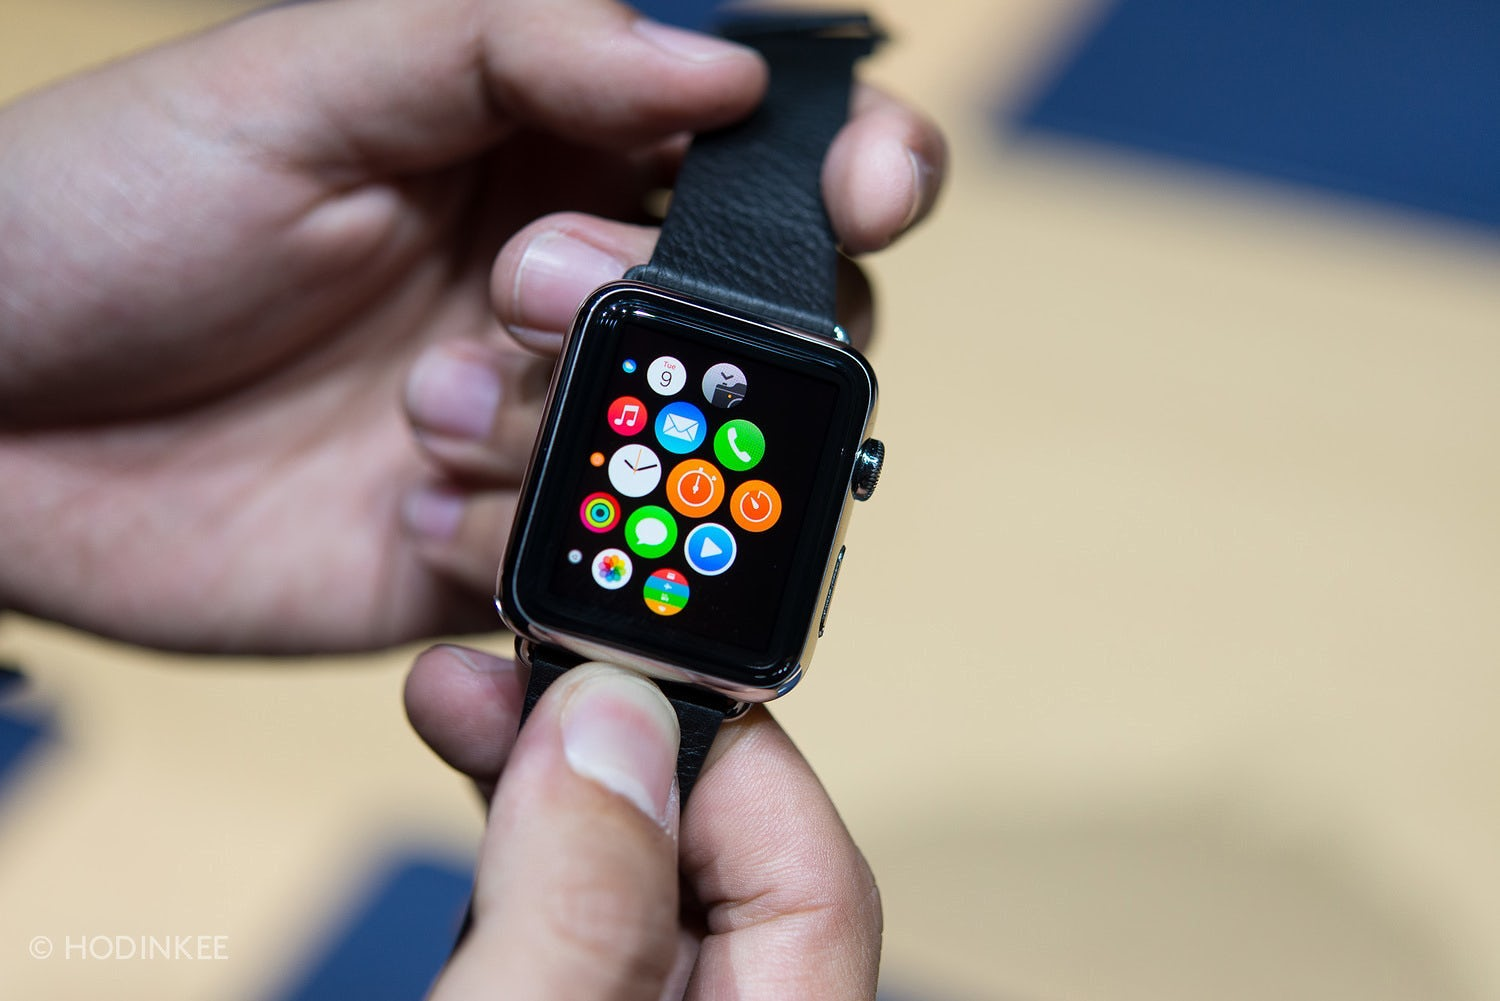 Apple Watch. Sursa: Hodinkee